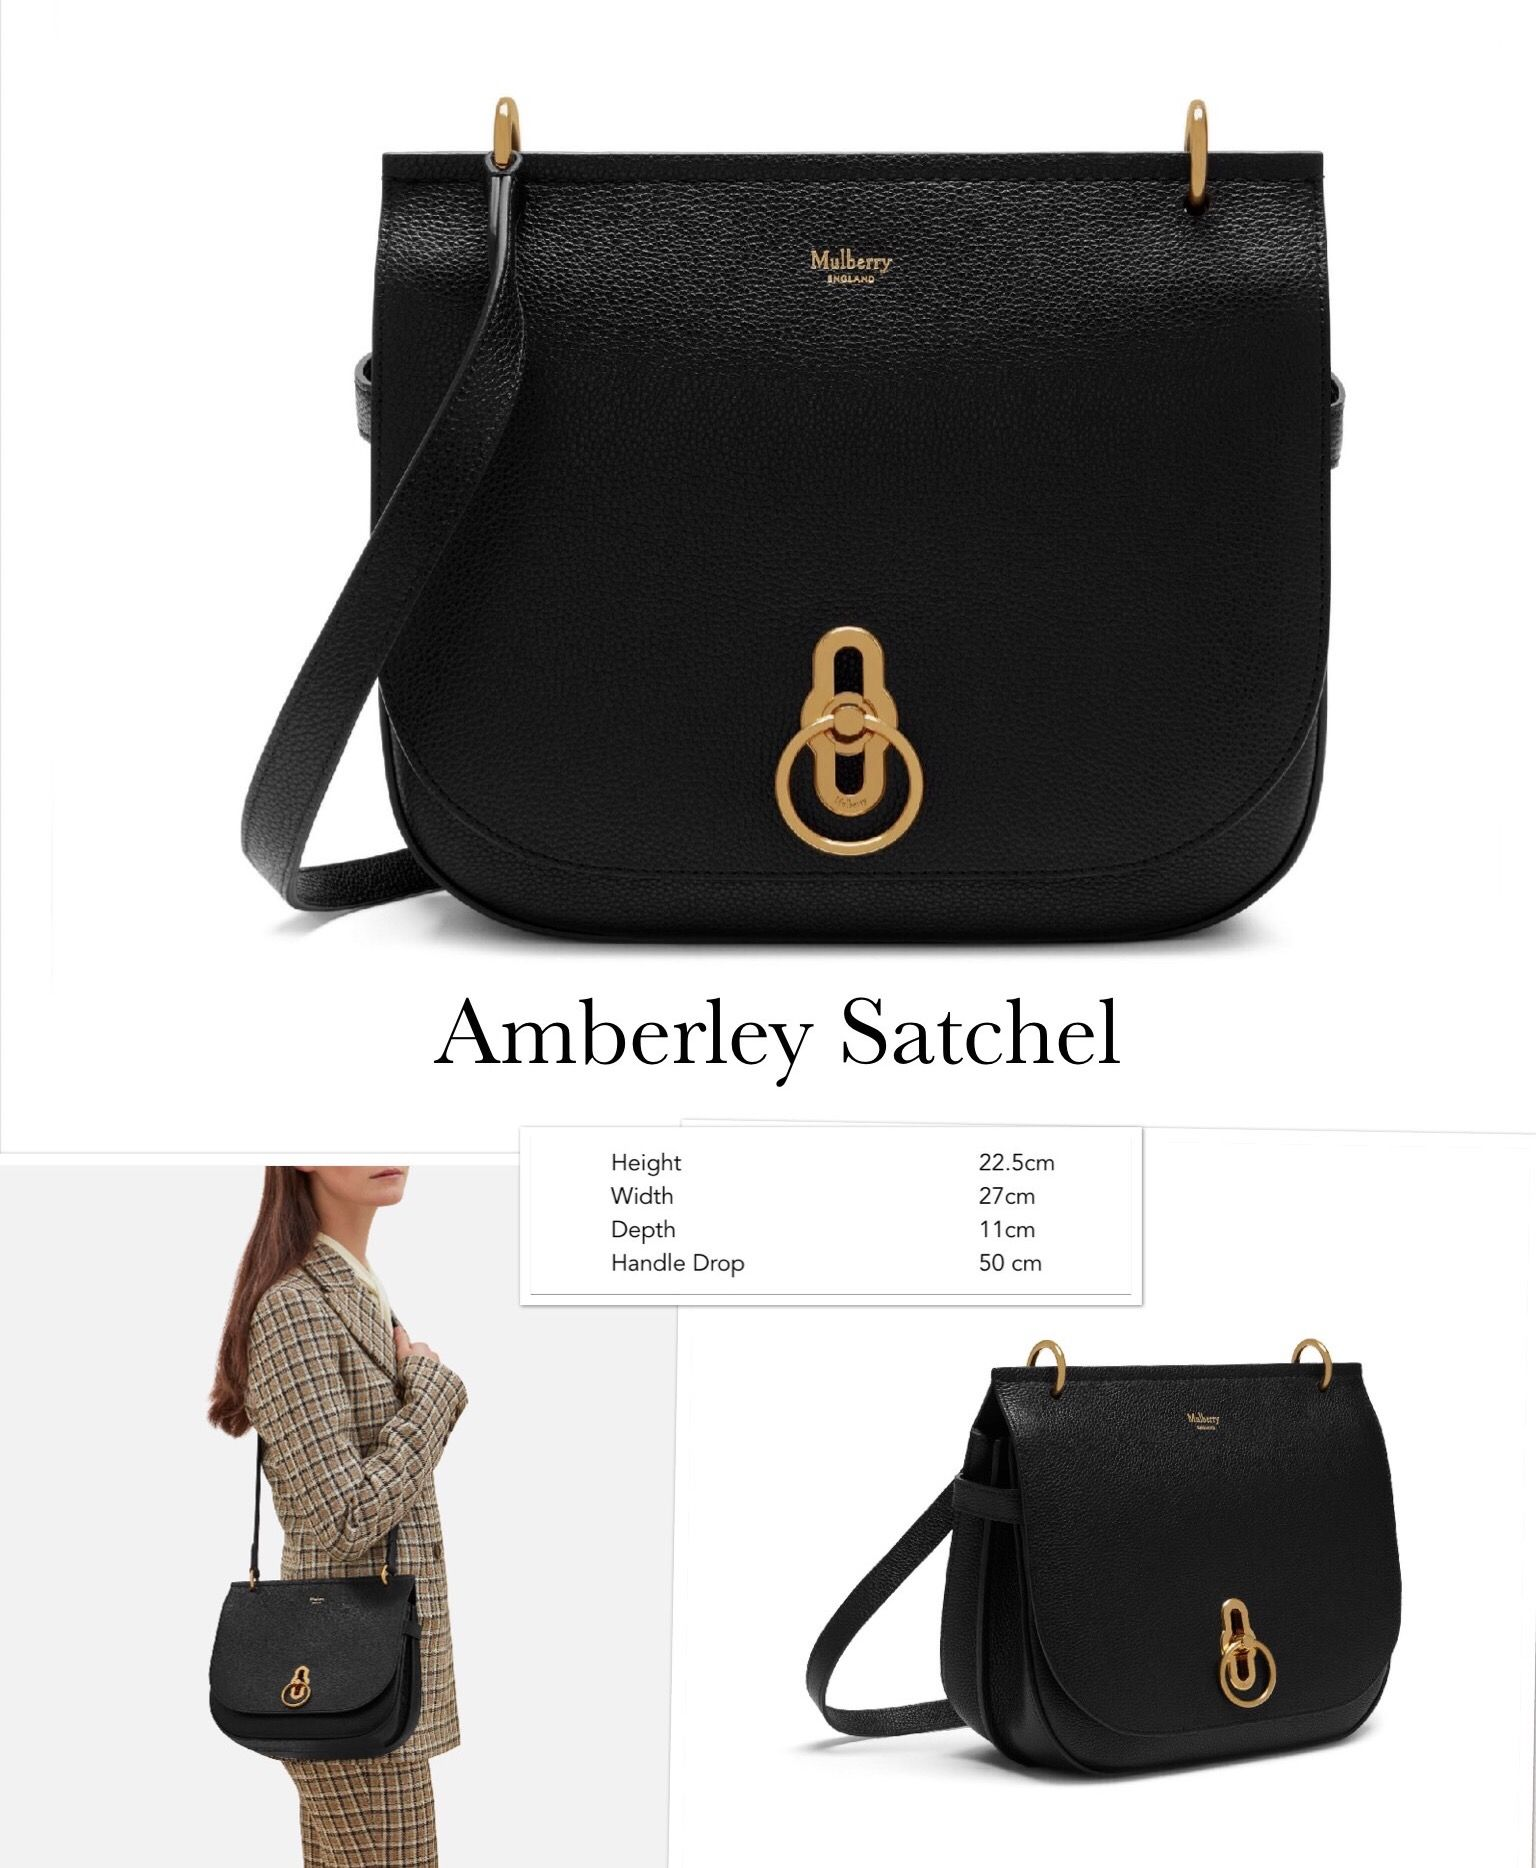 83e51d4c9936 Mulberry Amberley Satchel FW2017 Bags 2017